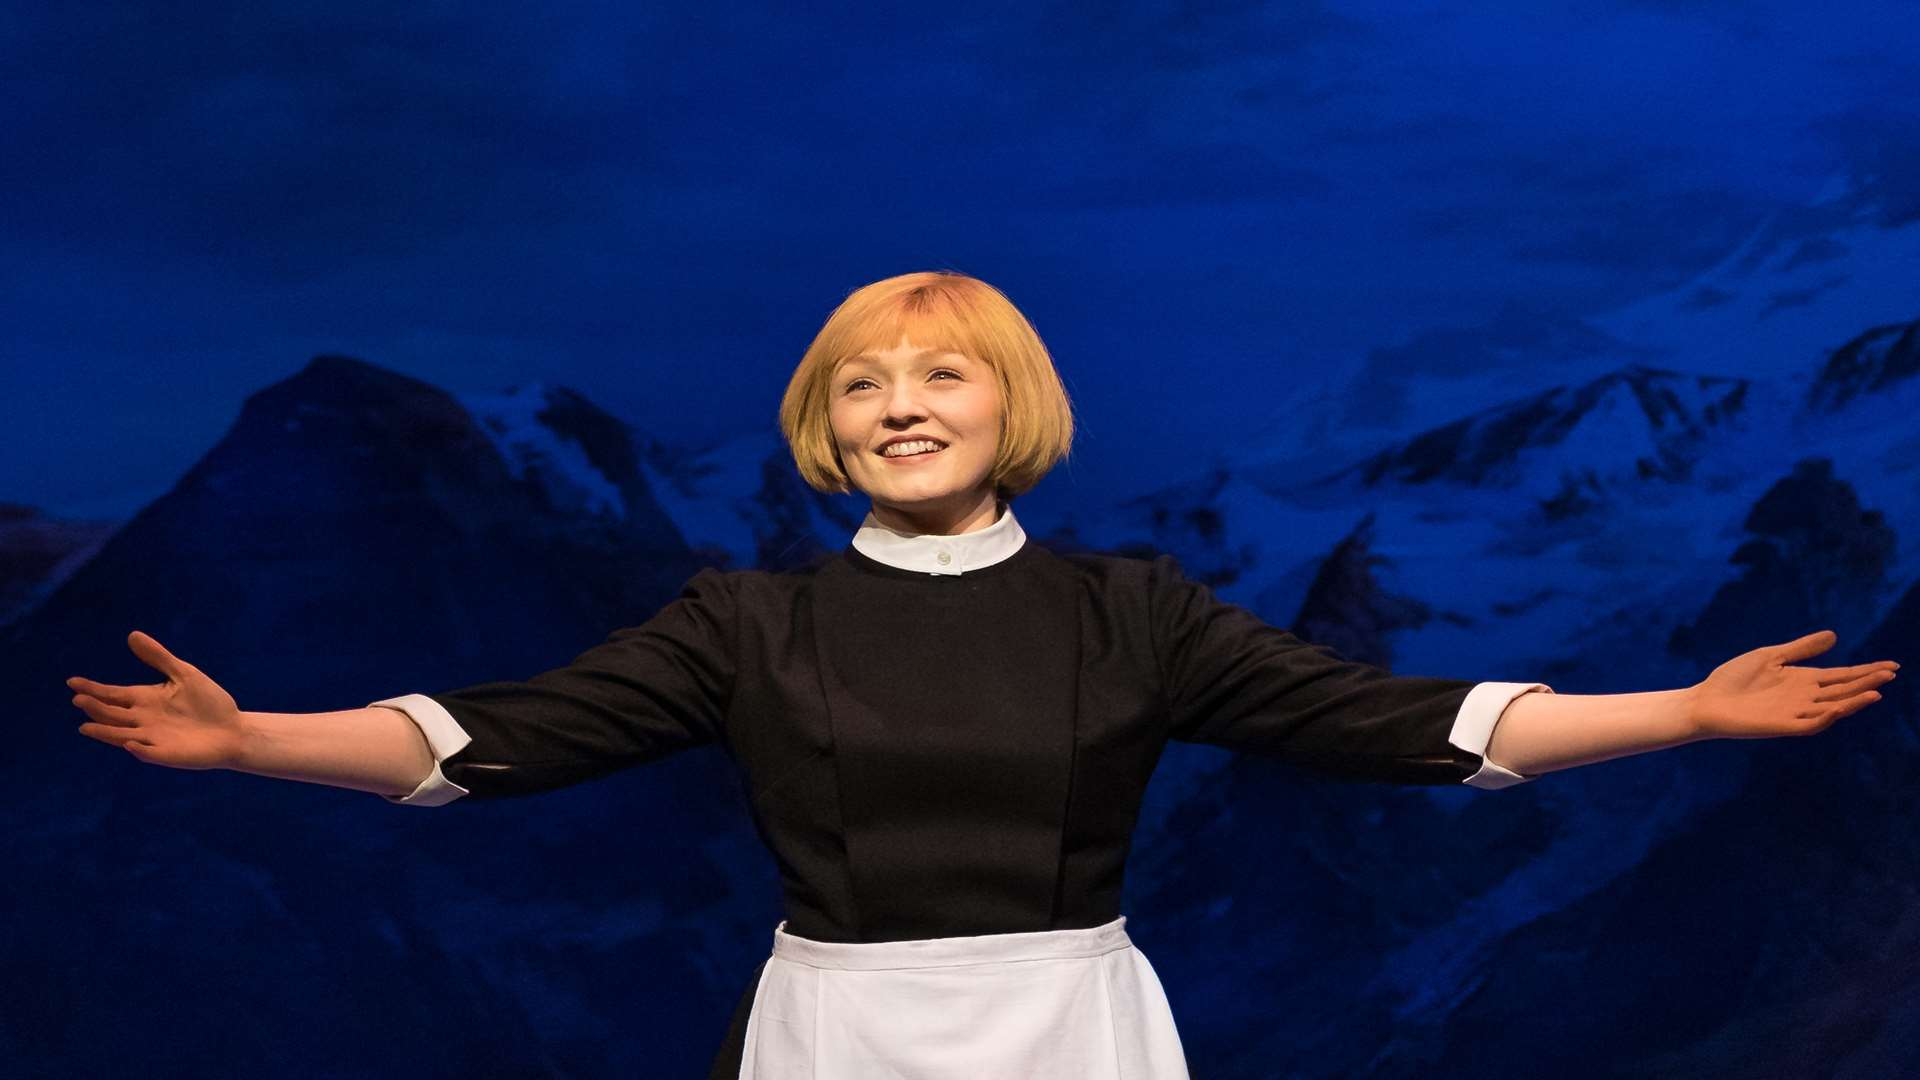 Lucy O'Byrne in the Sound of Music, coming to Bromley and Tunbridge Wells